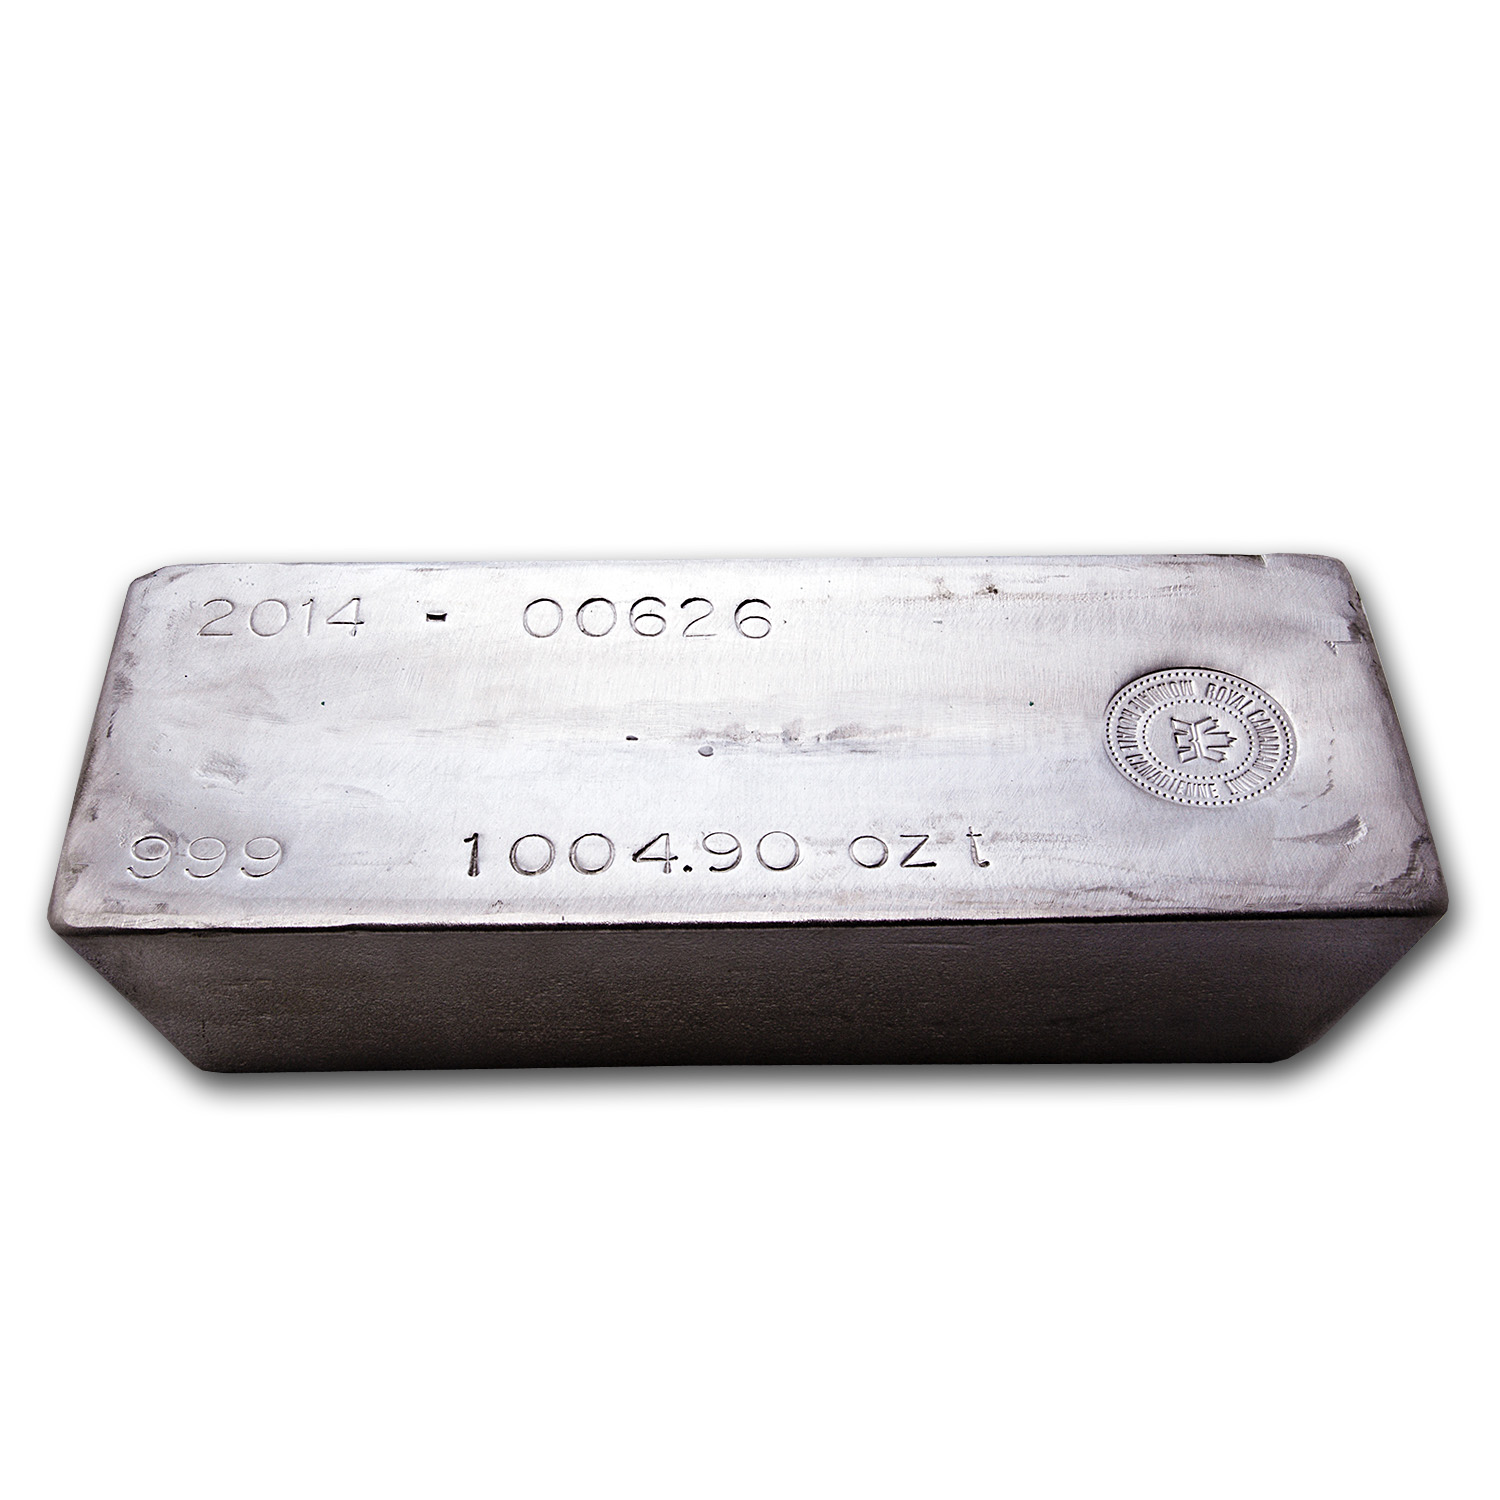 995.70 oz Silver Bars - Royal Canadian Mint (COMEX Deliverable)